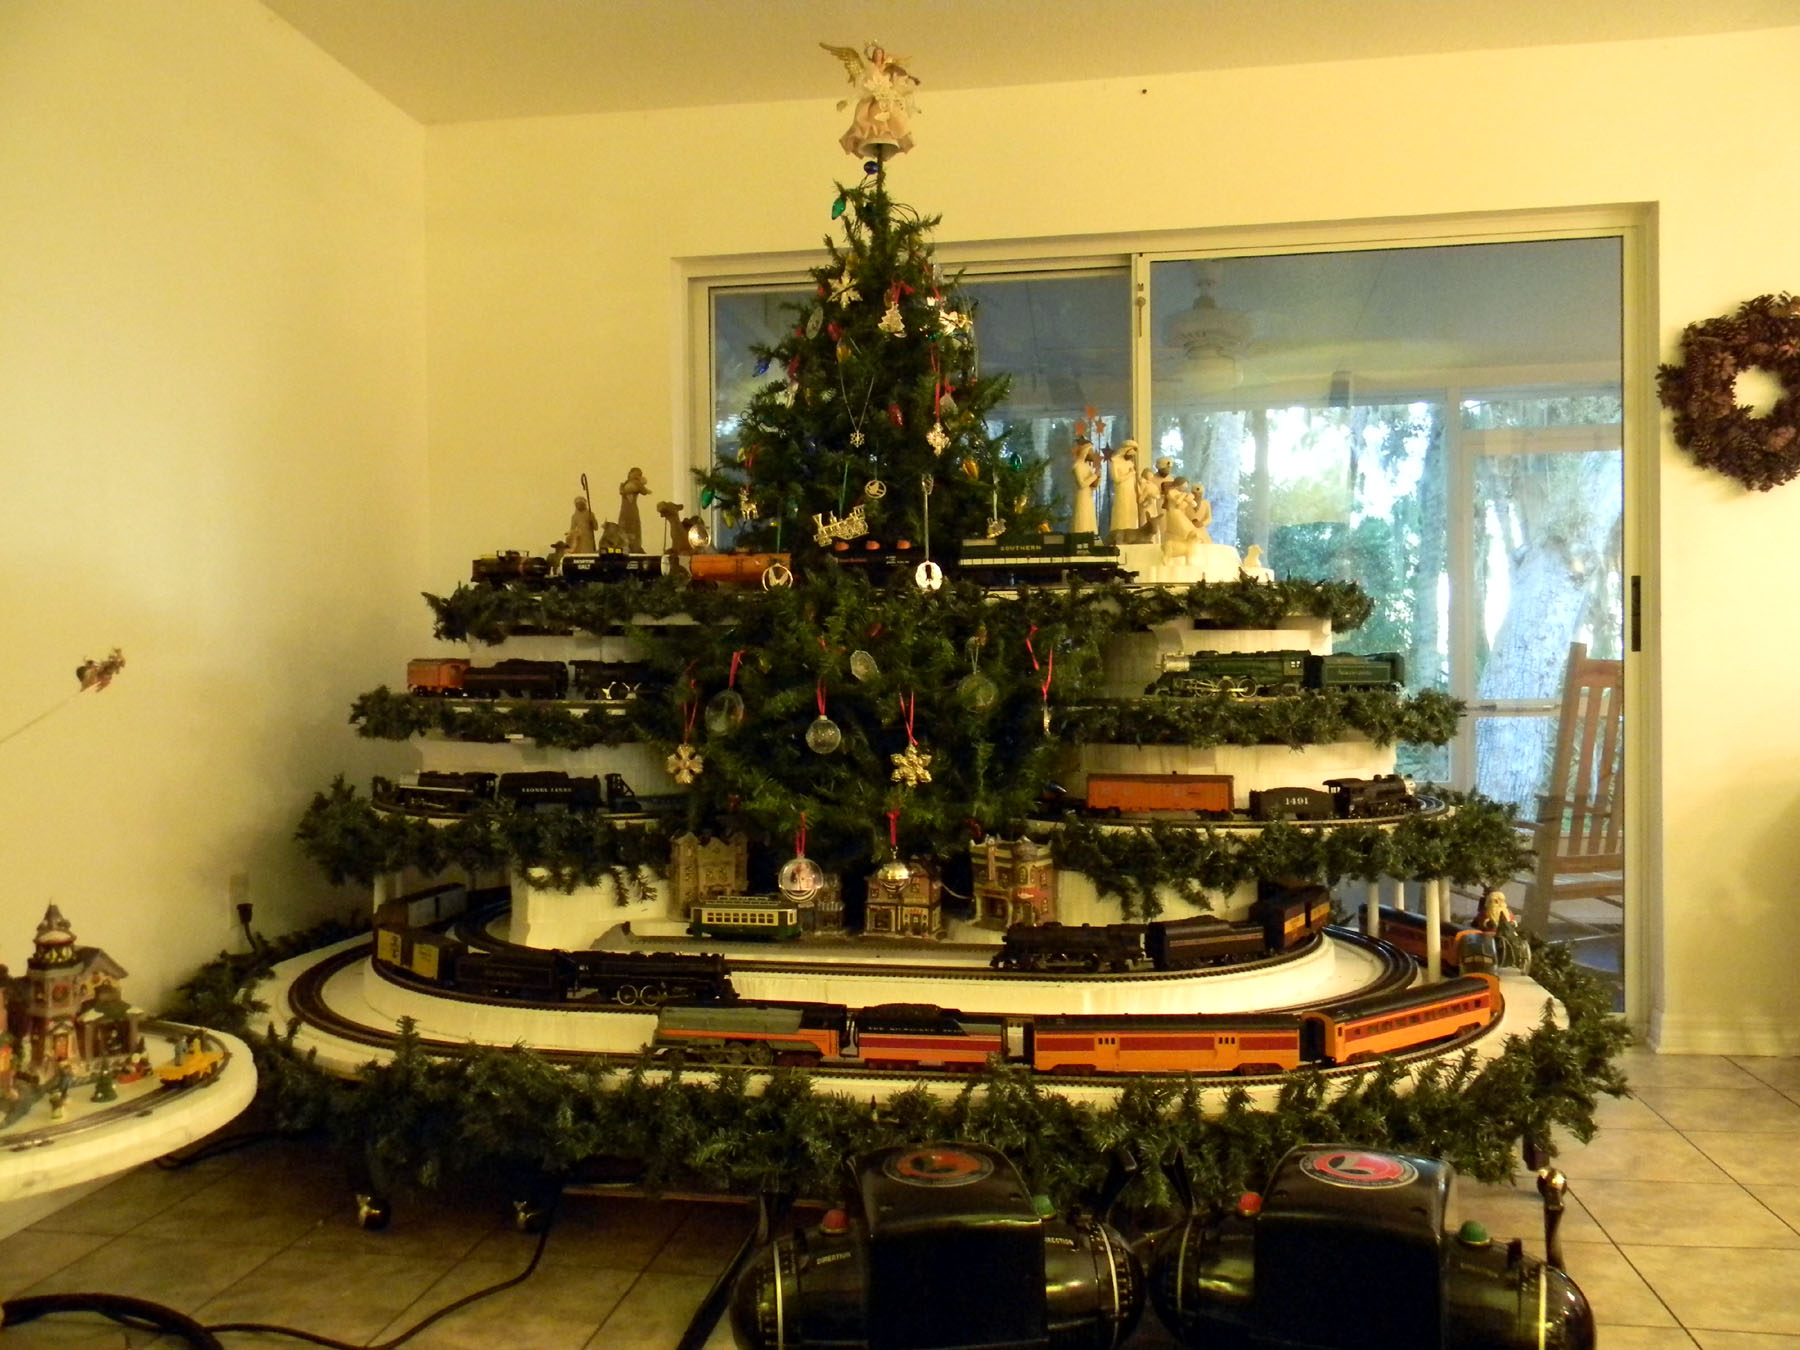 Trains Under Christmas Tree